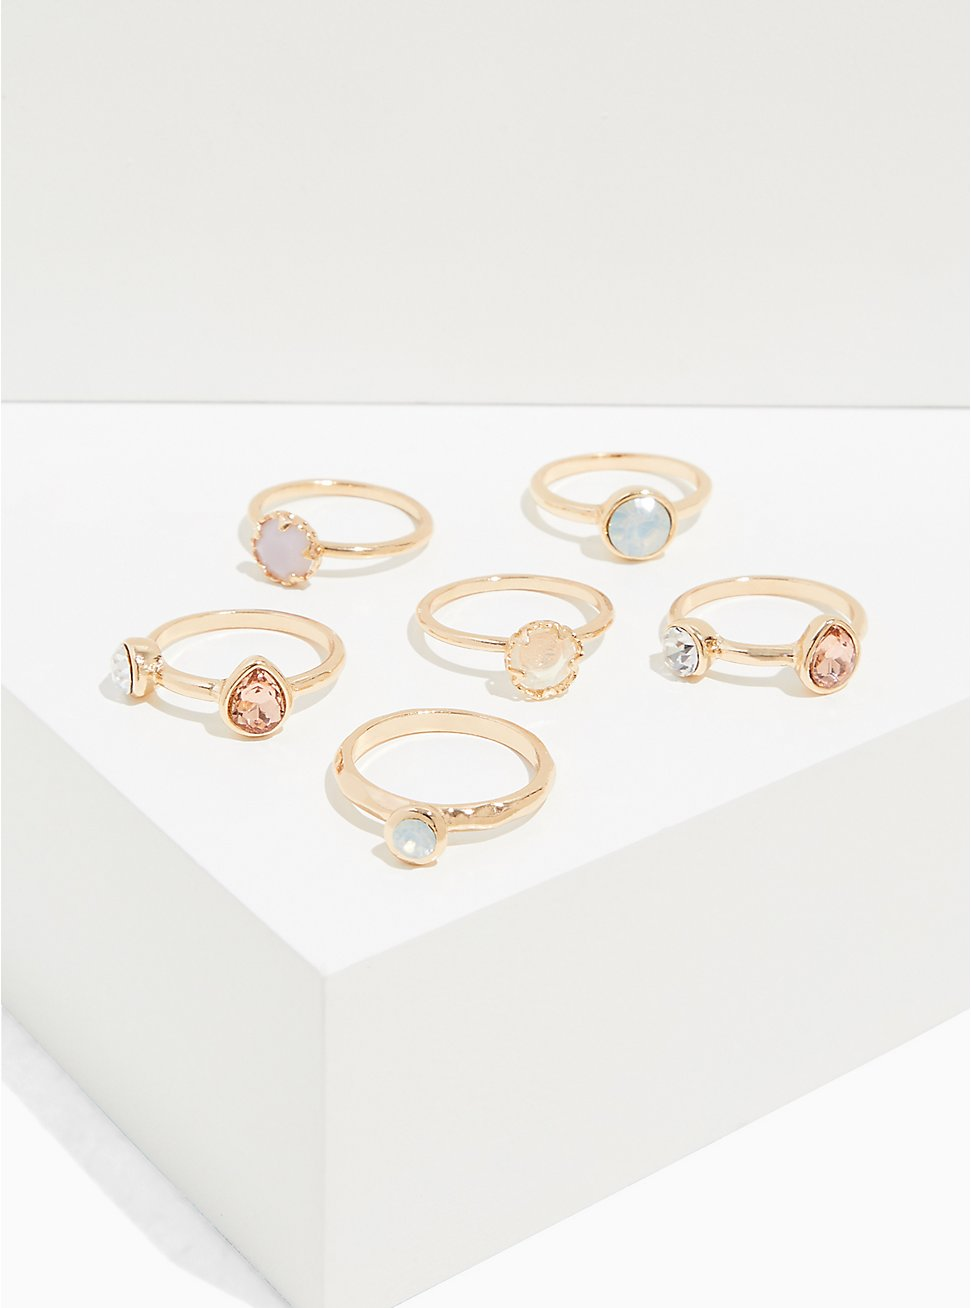 Gold-Tone Faux Moon Stone Ring Set - Set of 6, MULTI, hi-res